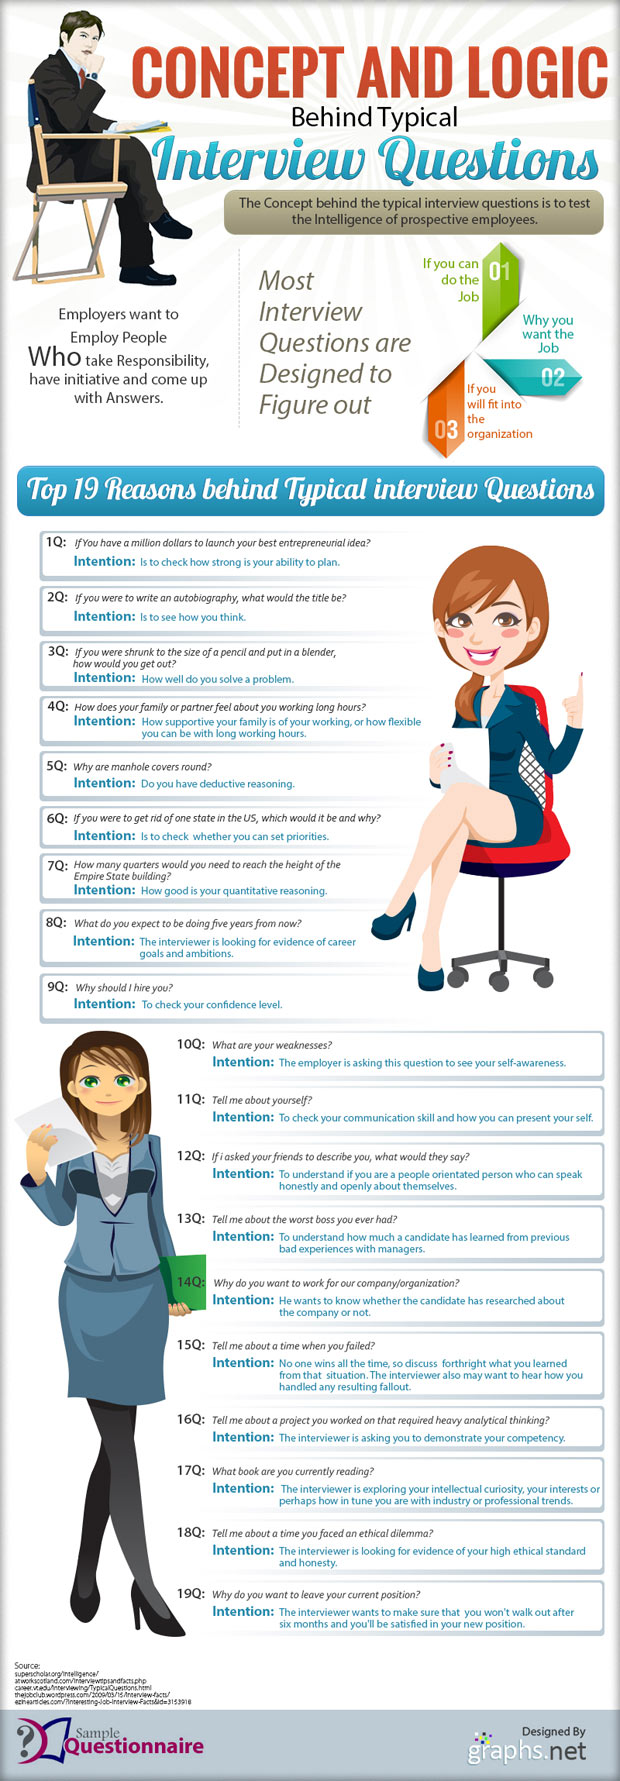 job-interview-questions-infographic